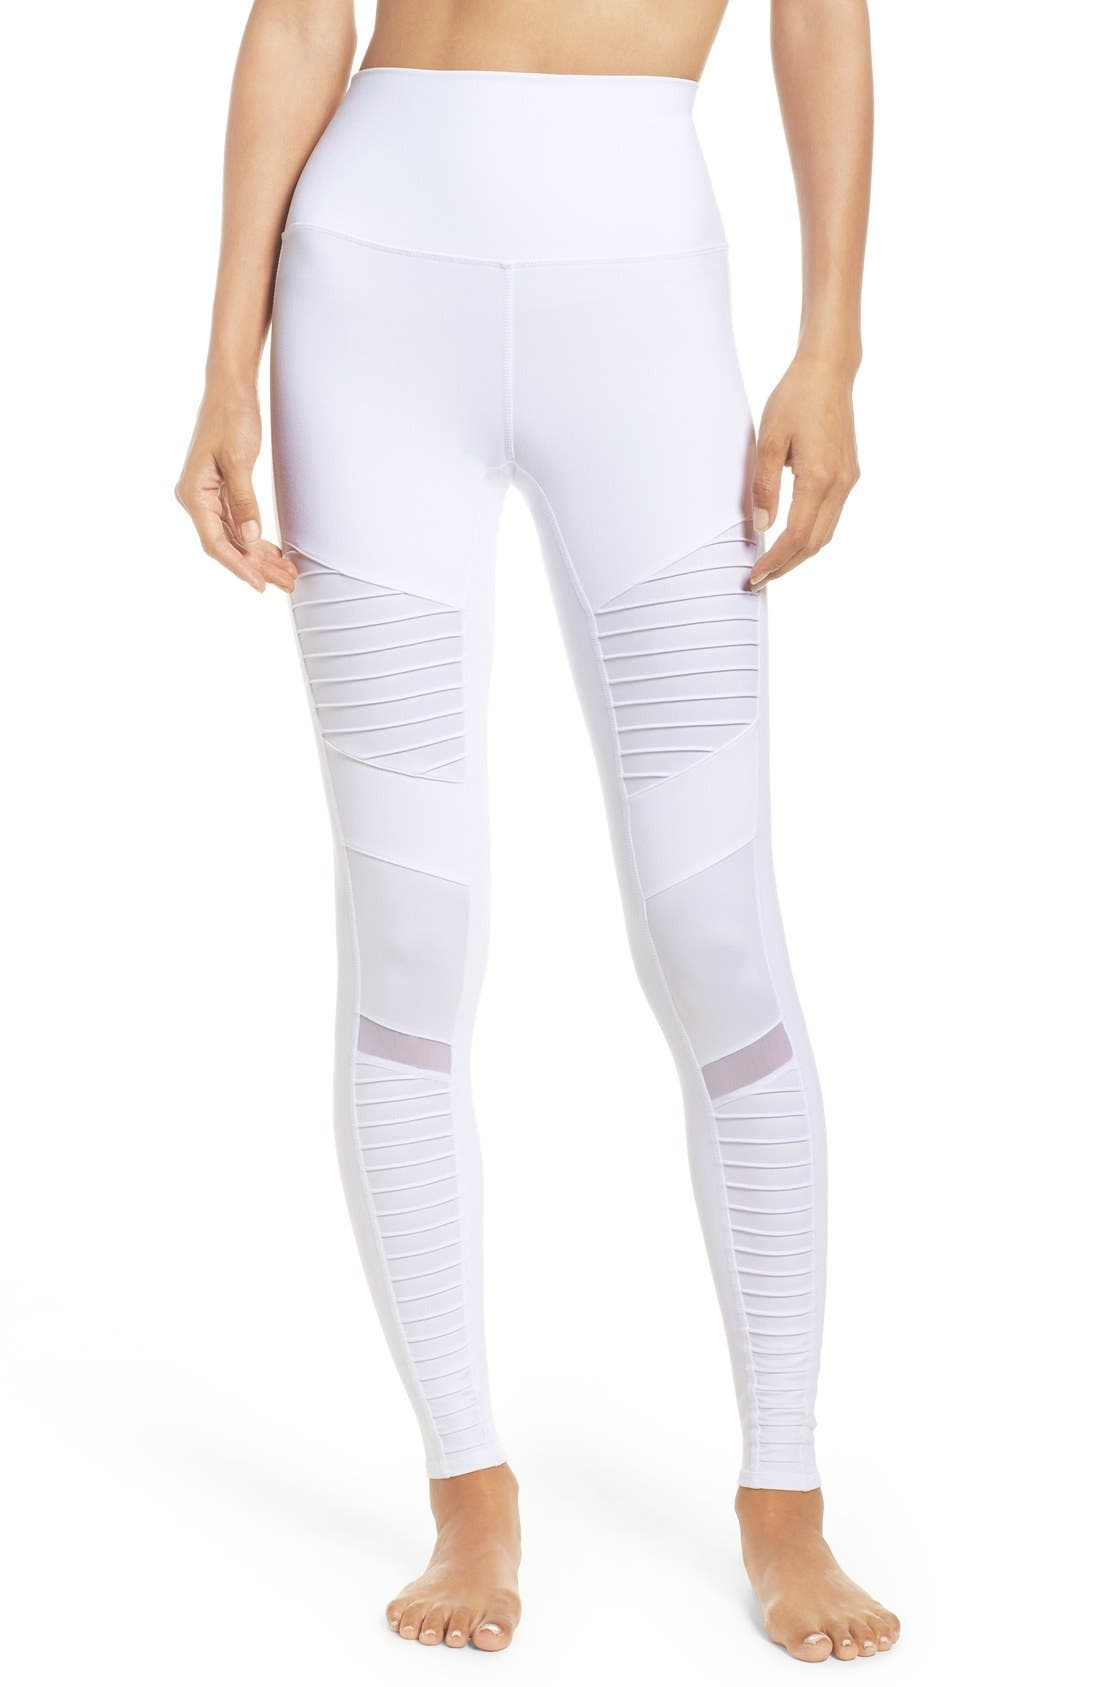 Image result for white workout pants